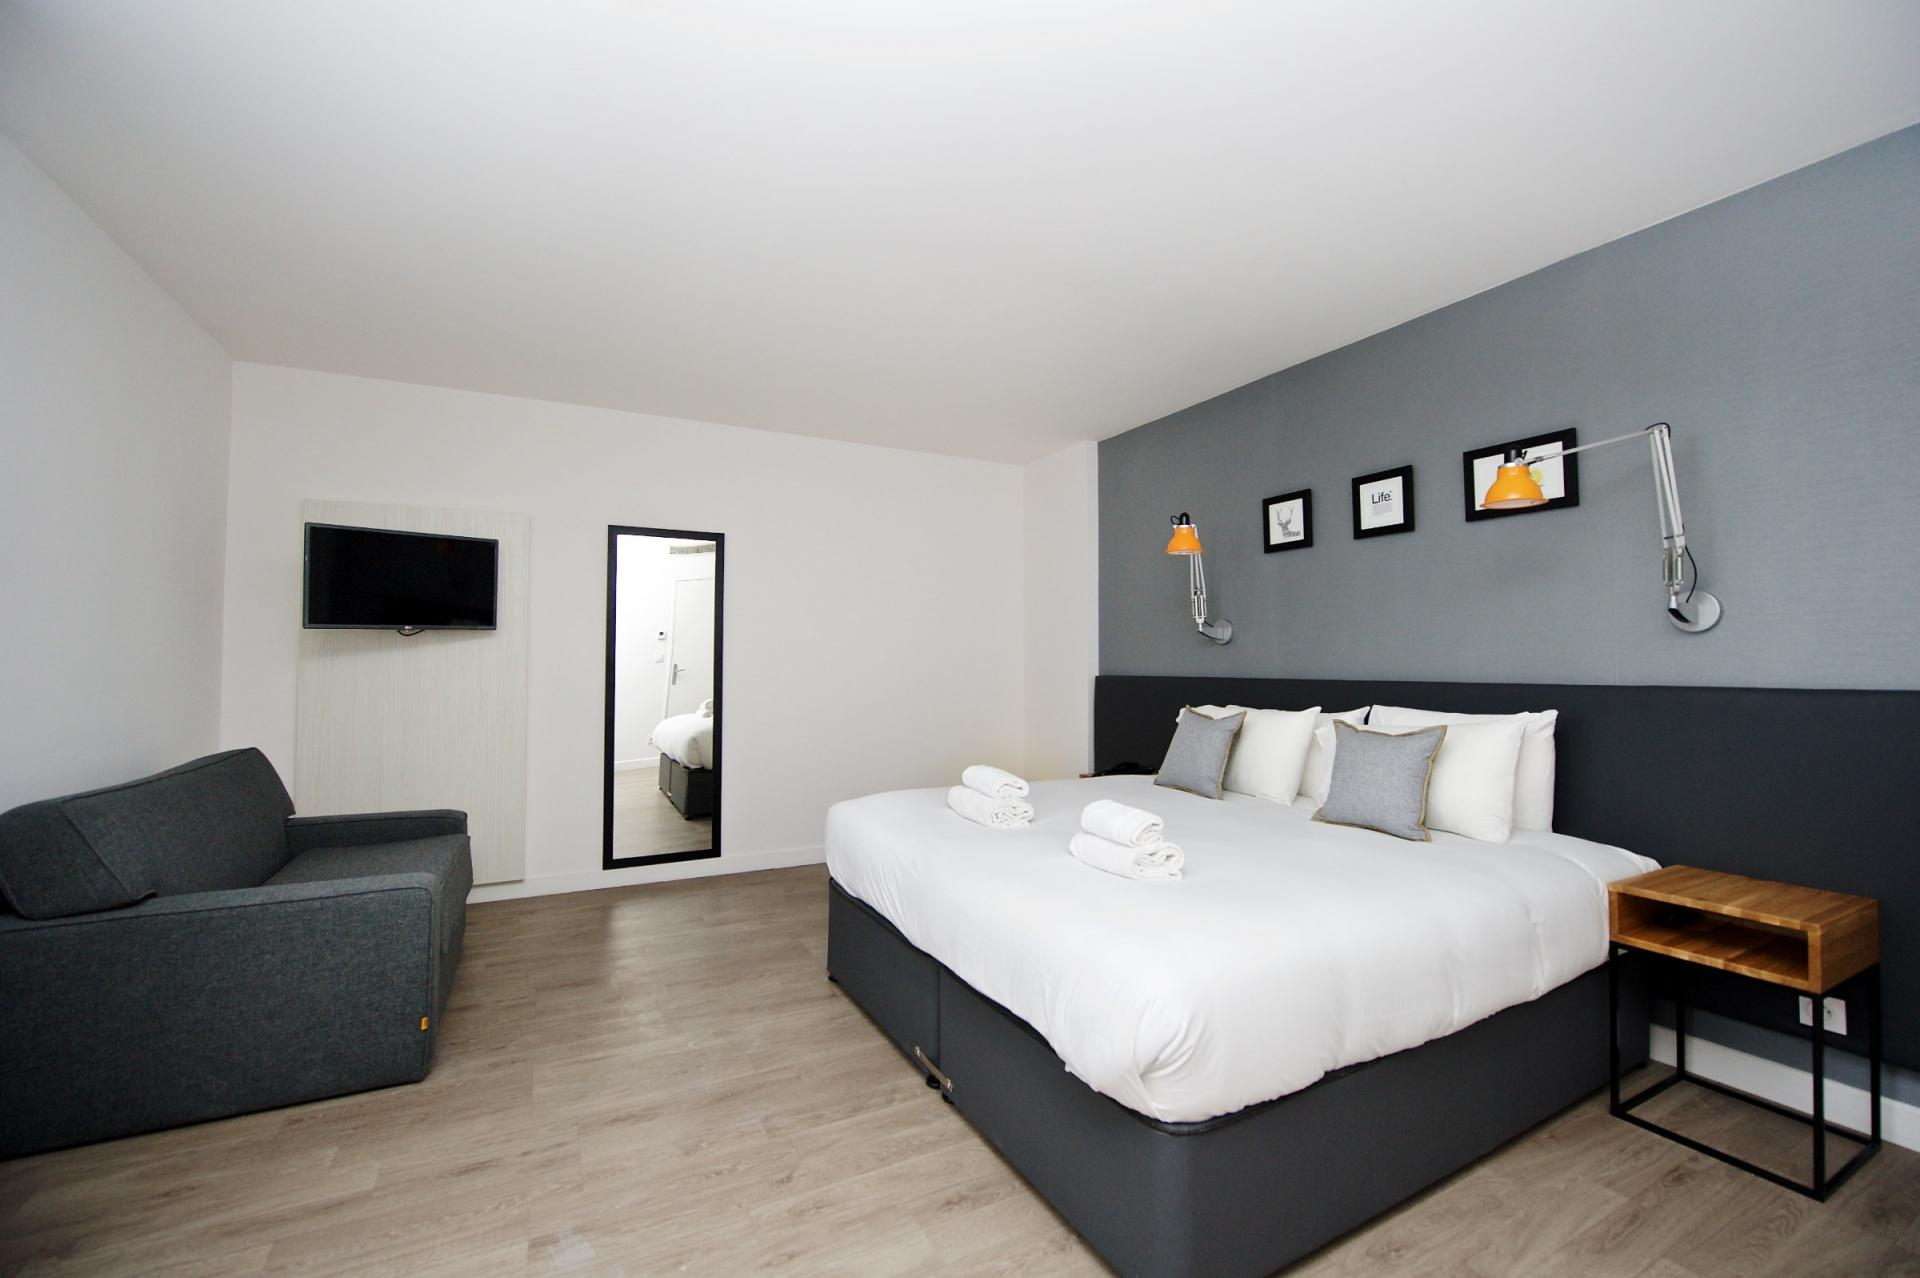 Large studio at Staycity Centre Vieux Port - Citybase Apartments